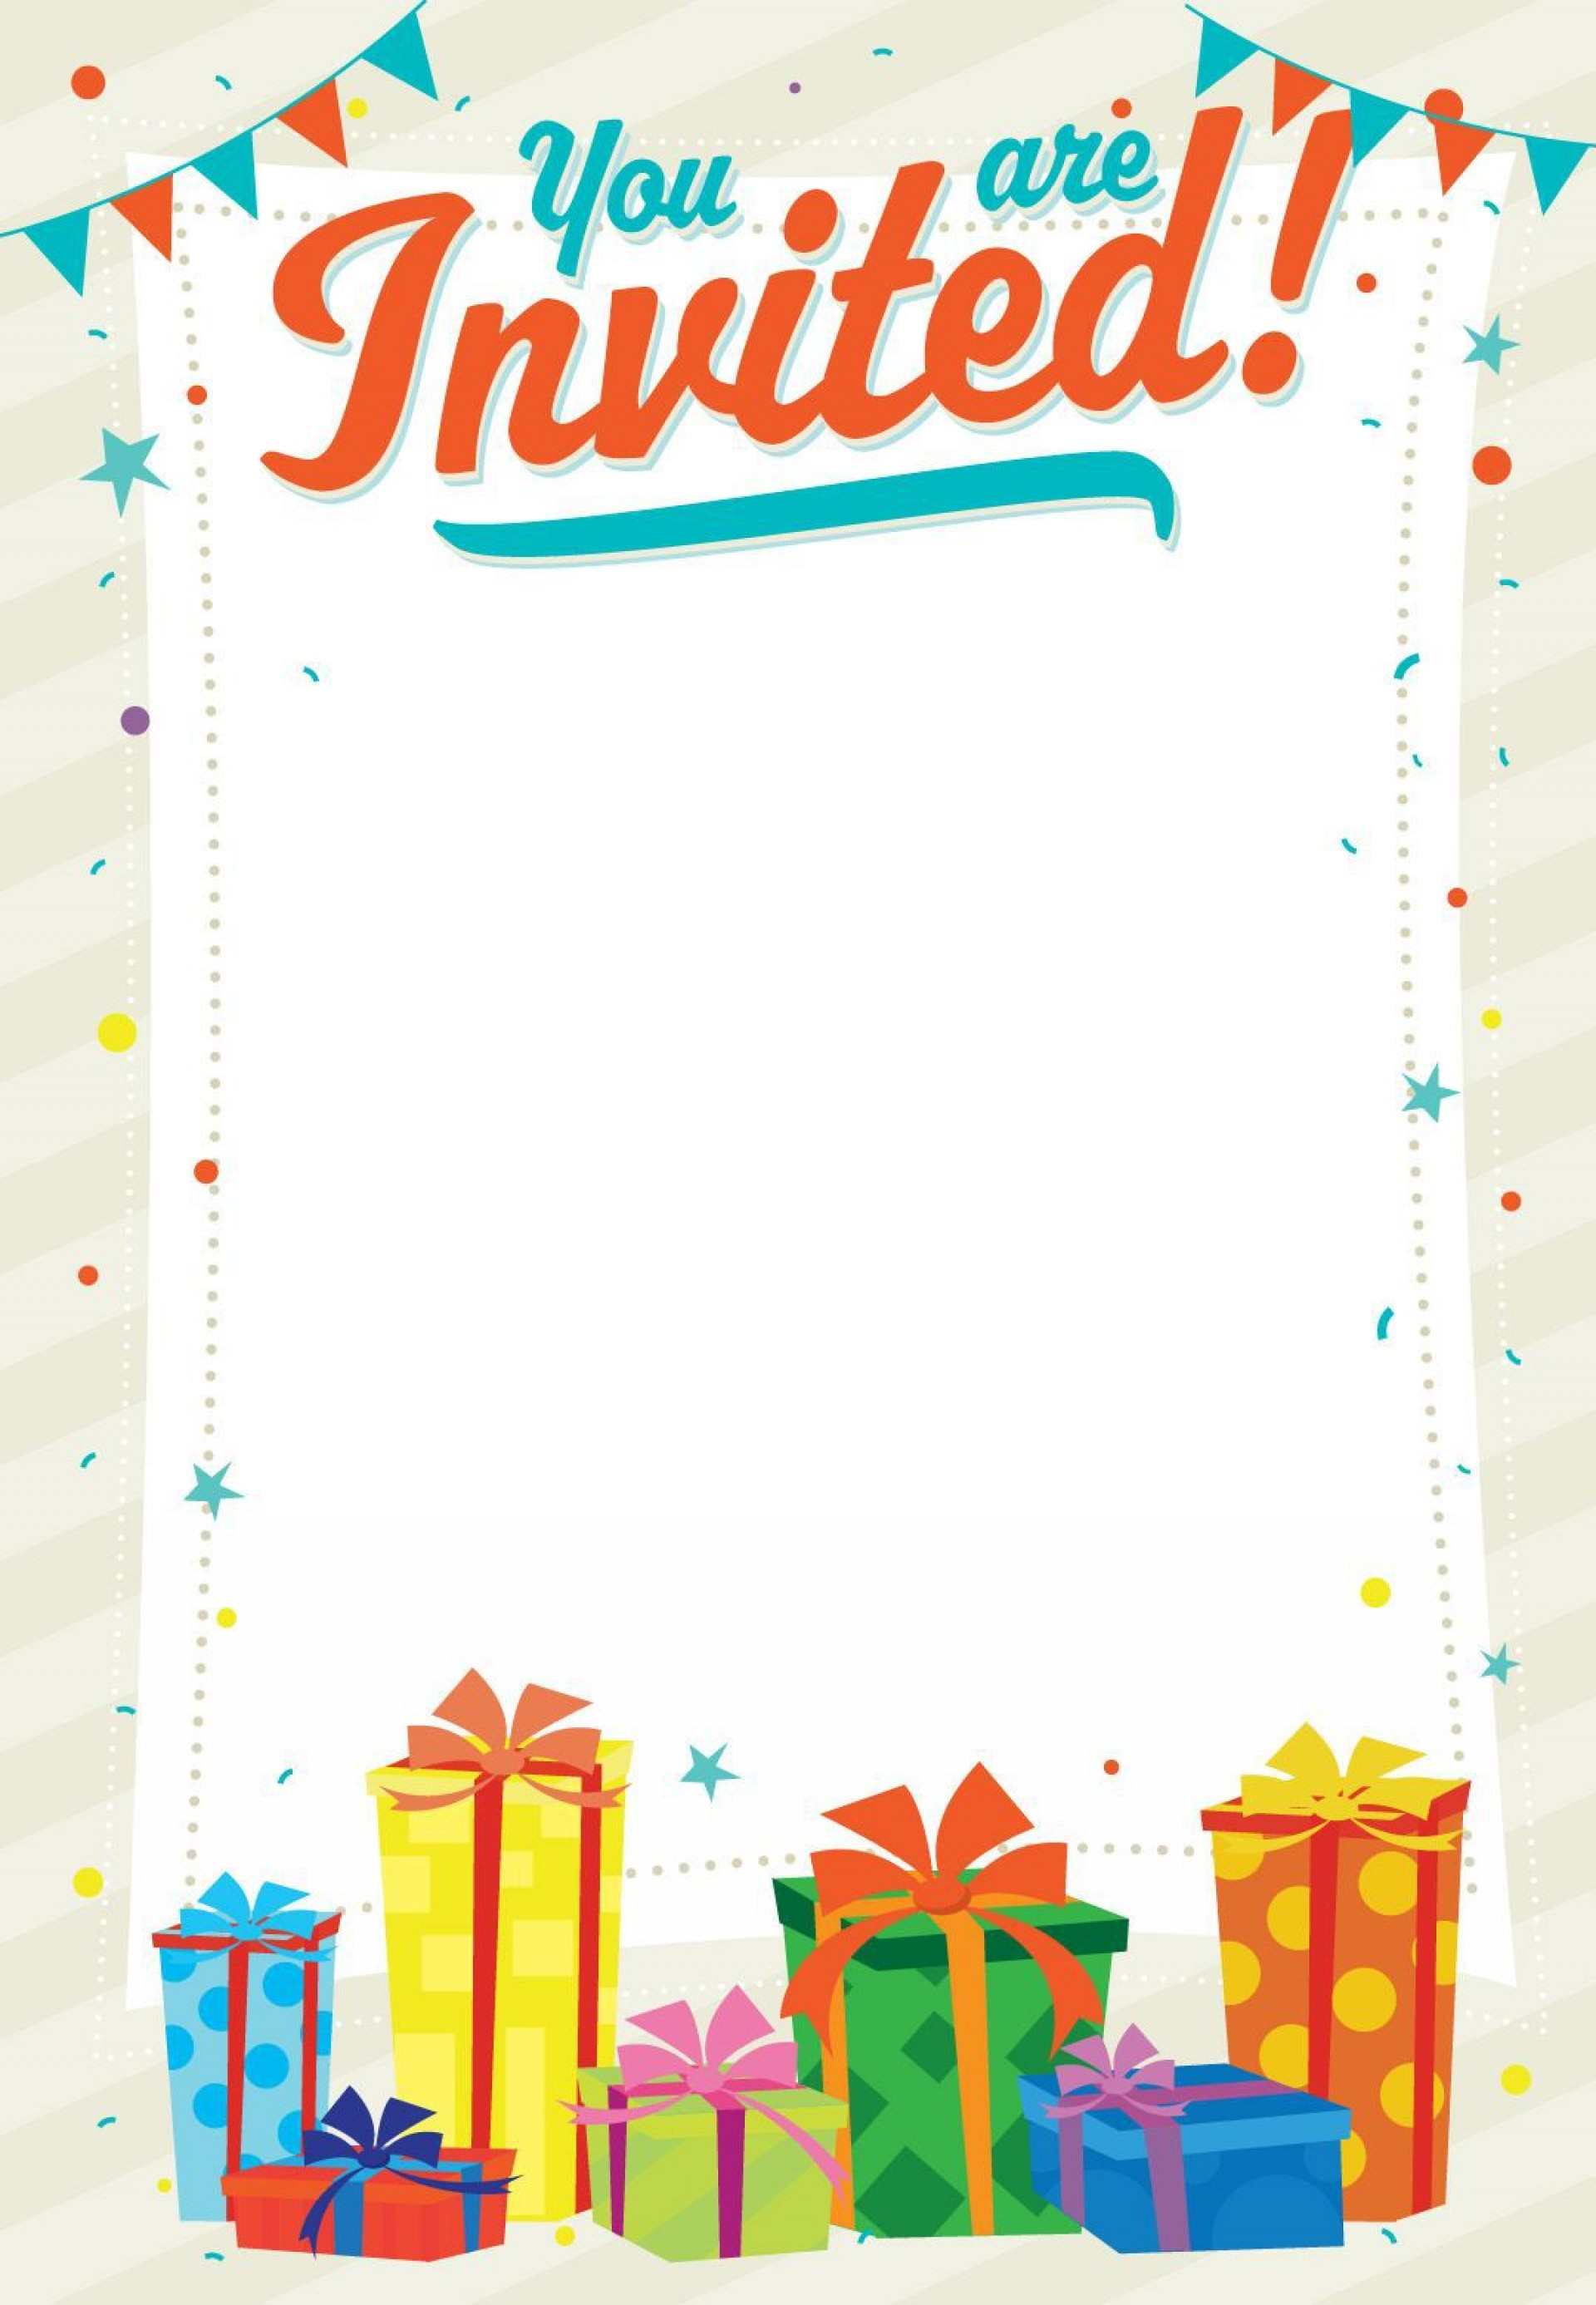 003 Unbelievable Free Online Birthday Invitation Maker Printable Picture  1st Card1920